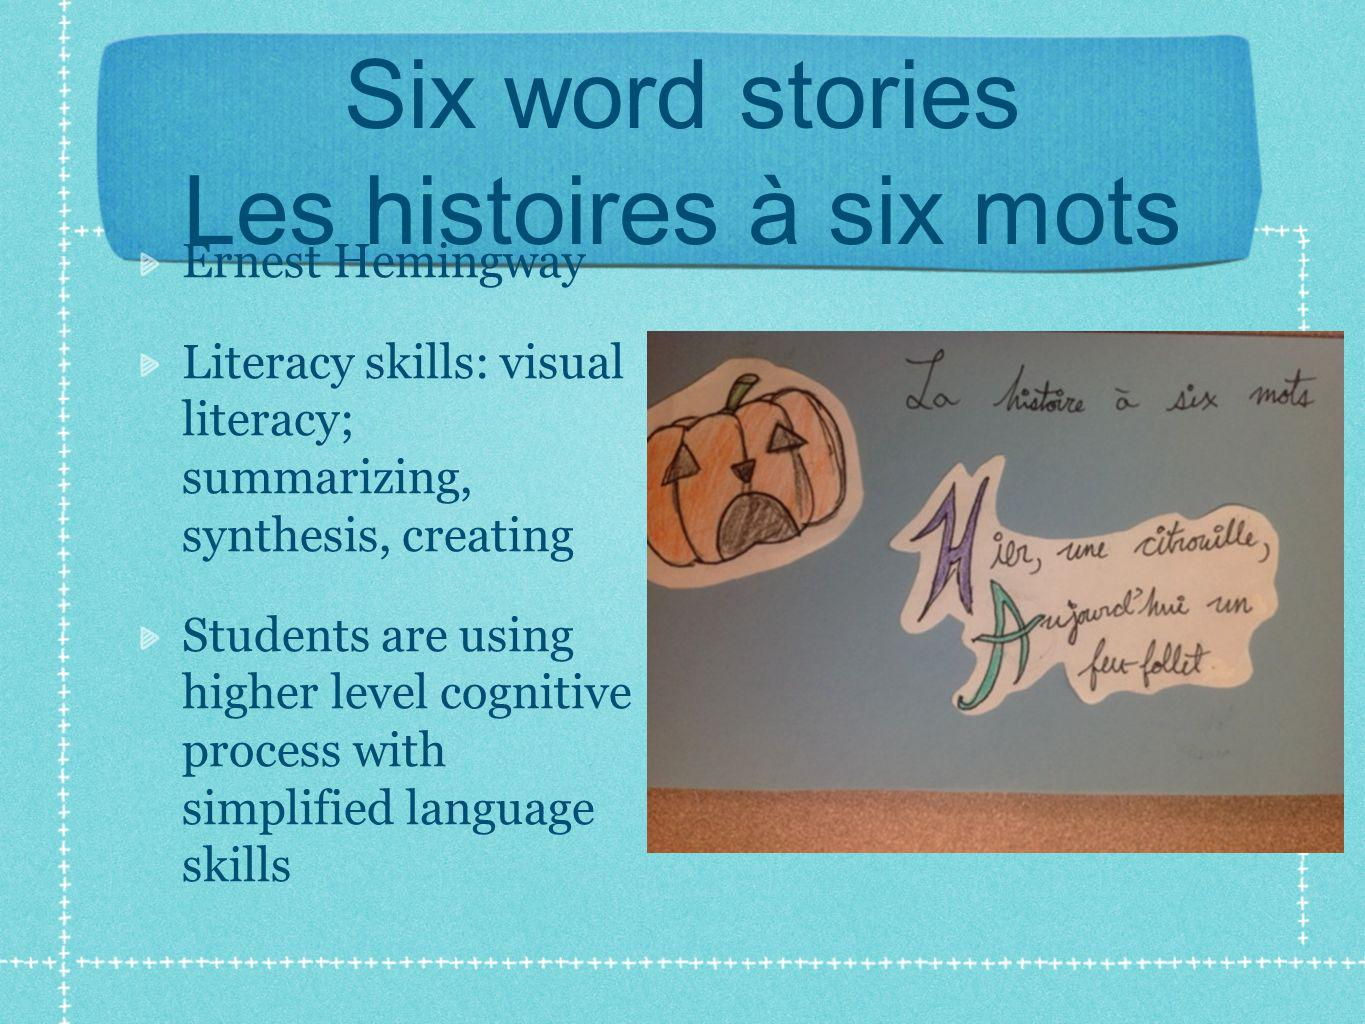 Six word stories Les histoires à six mots Ernest Hemingway Literacy skills: visual literacy; summarizing, synthesis, creating Students are using highe